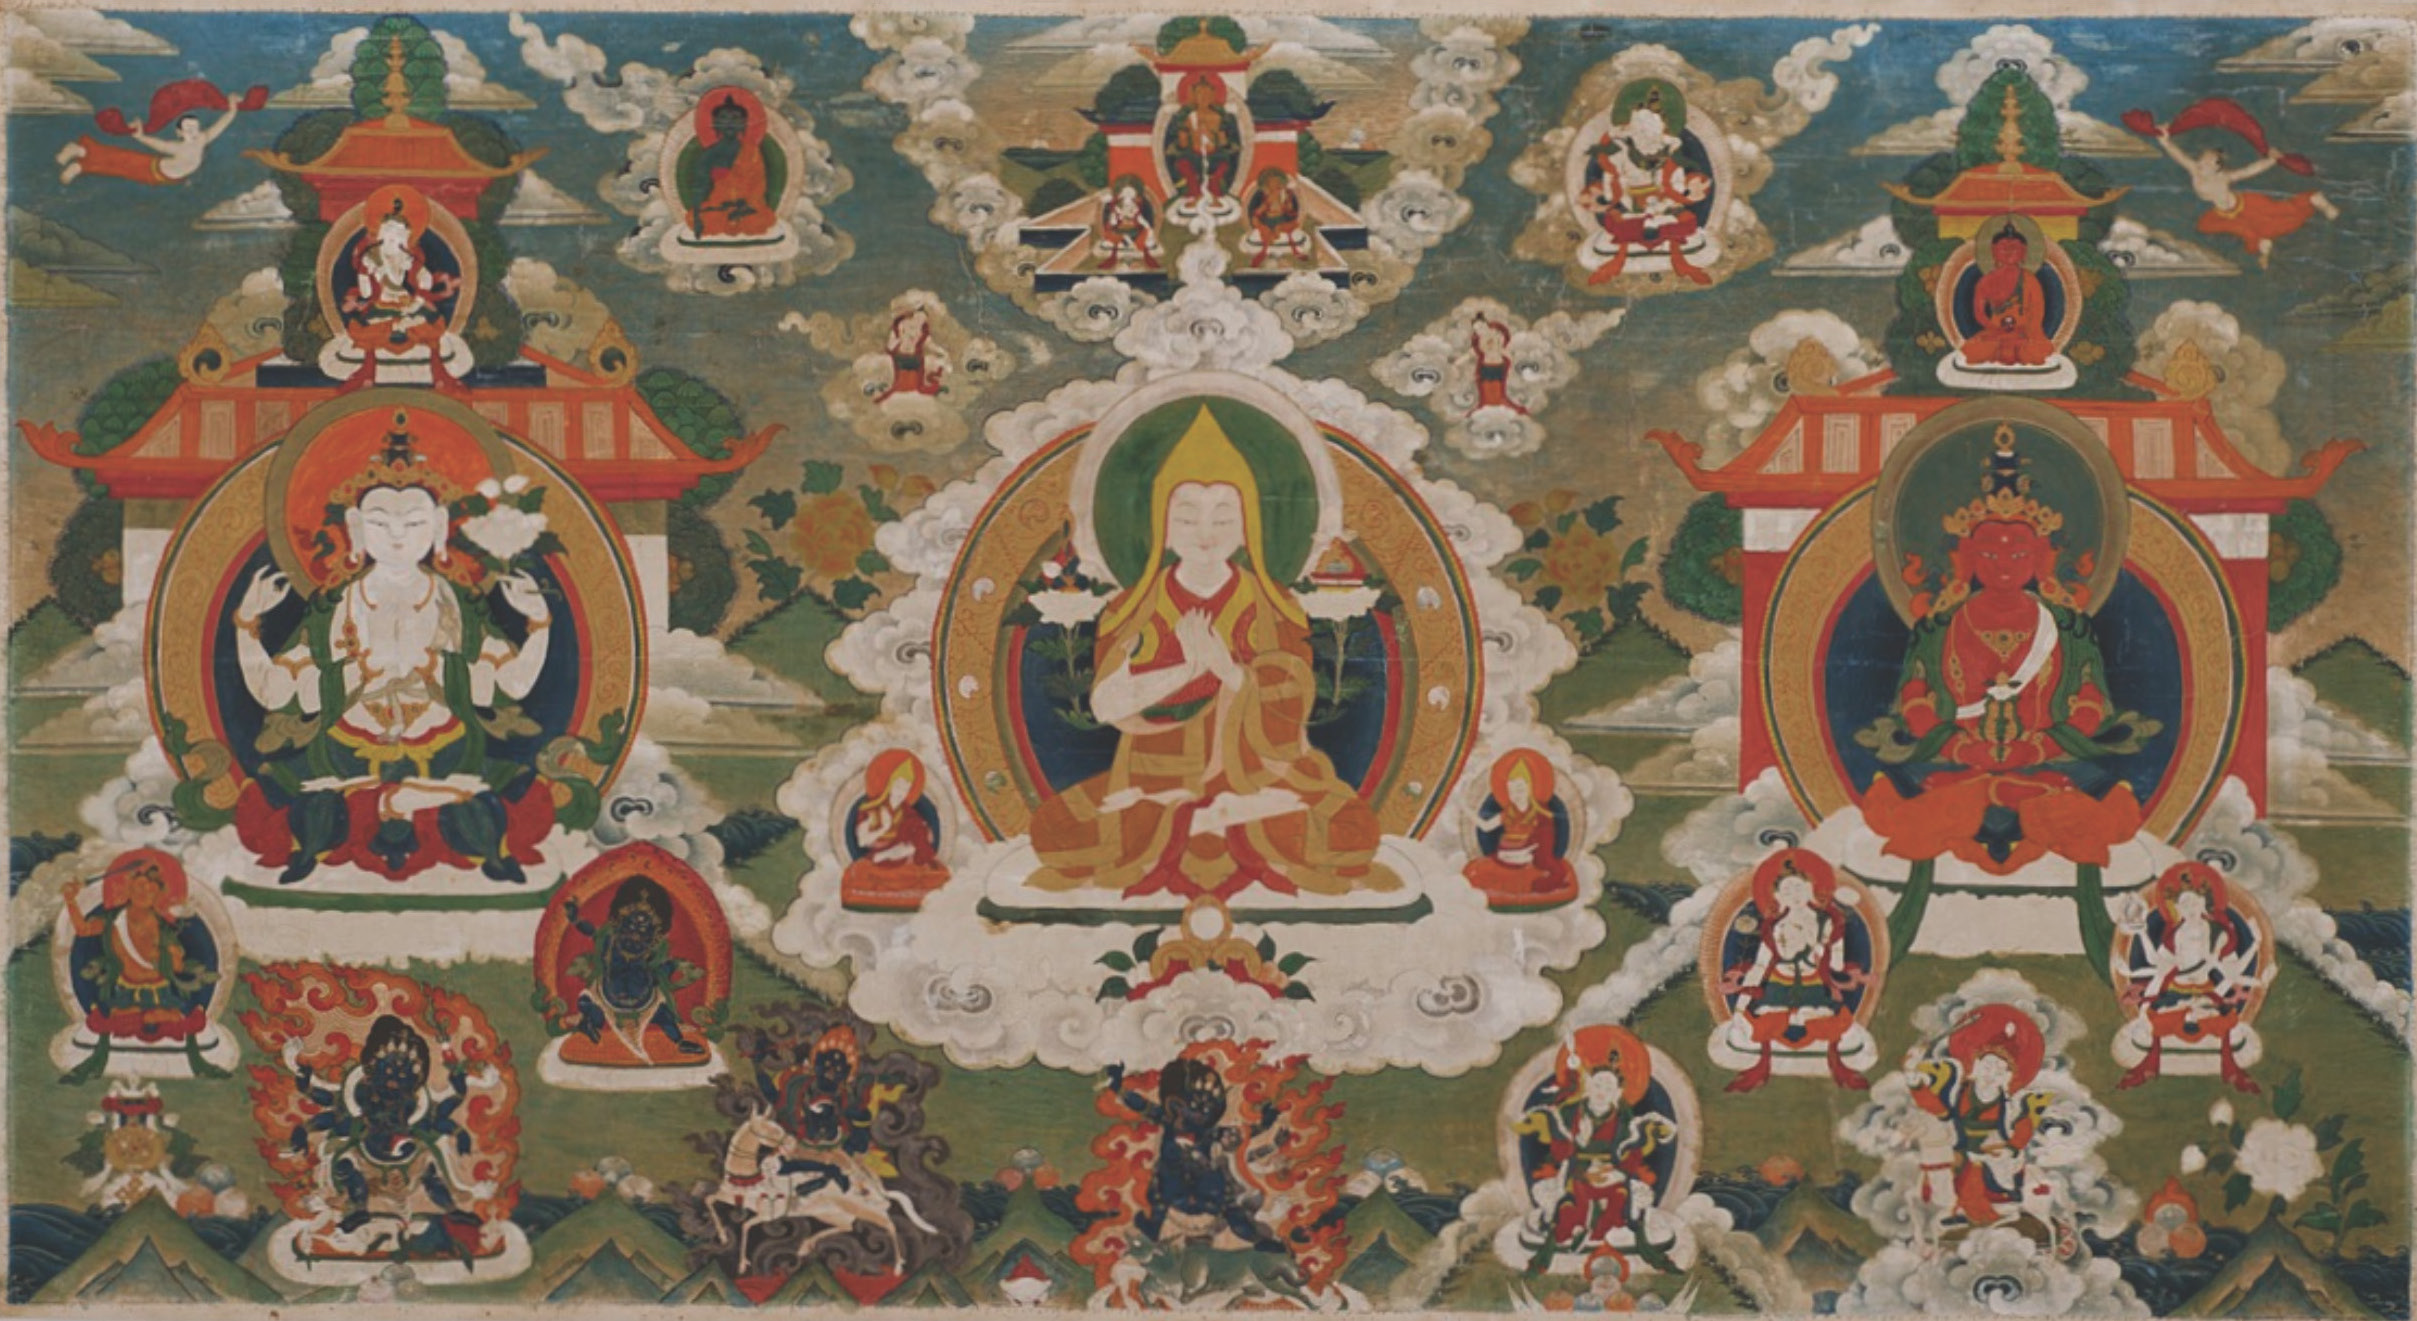 a description of how the buddhist religion tie in with the tibetans Tibetans should be proud that like any other major civilizations of the world, they too had an ancient religious culture, which evolved over the period of time, coexisted with buddhism, and gave the land and the world a unique religion and culture of peace, compassion and non-violence.